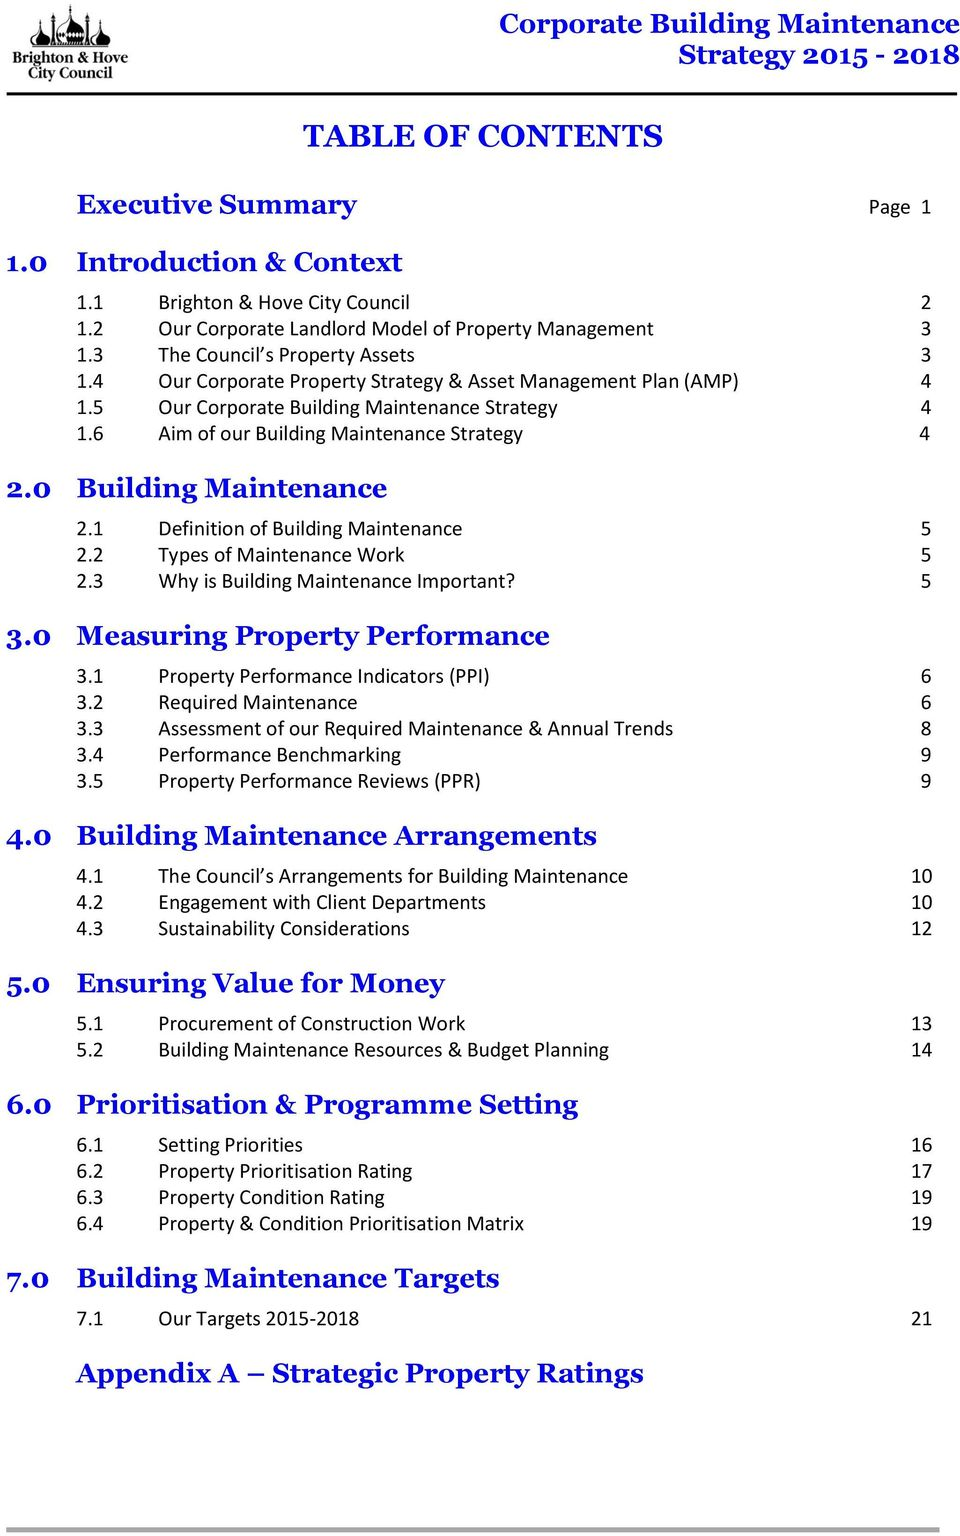 6 Aim of our Building Maintenance Strategy 4 2.0 Building Maintenance 2.1 Definition of Building Maintenance 5 2.2 Types of Maintenance Work 5 2.3 Why is Building Maintenance Important? 5 3.